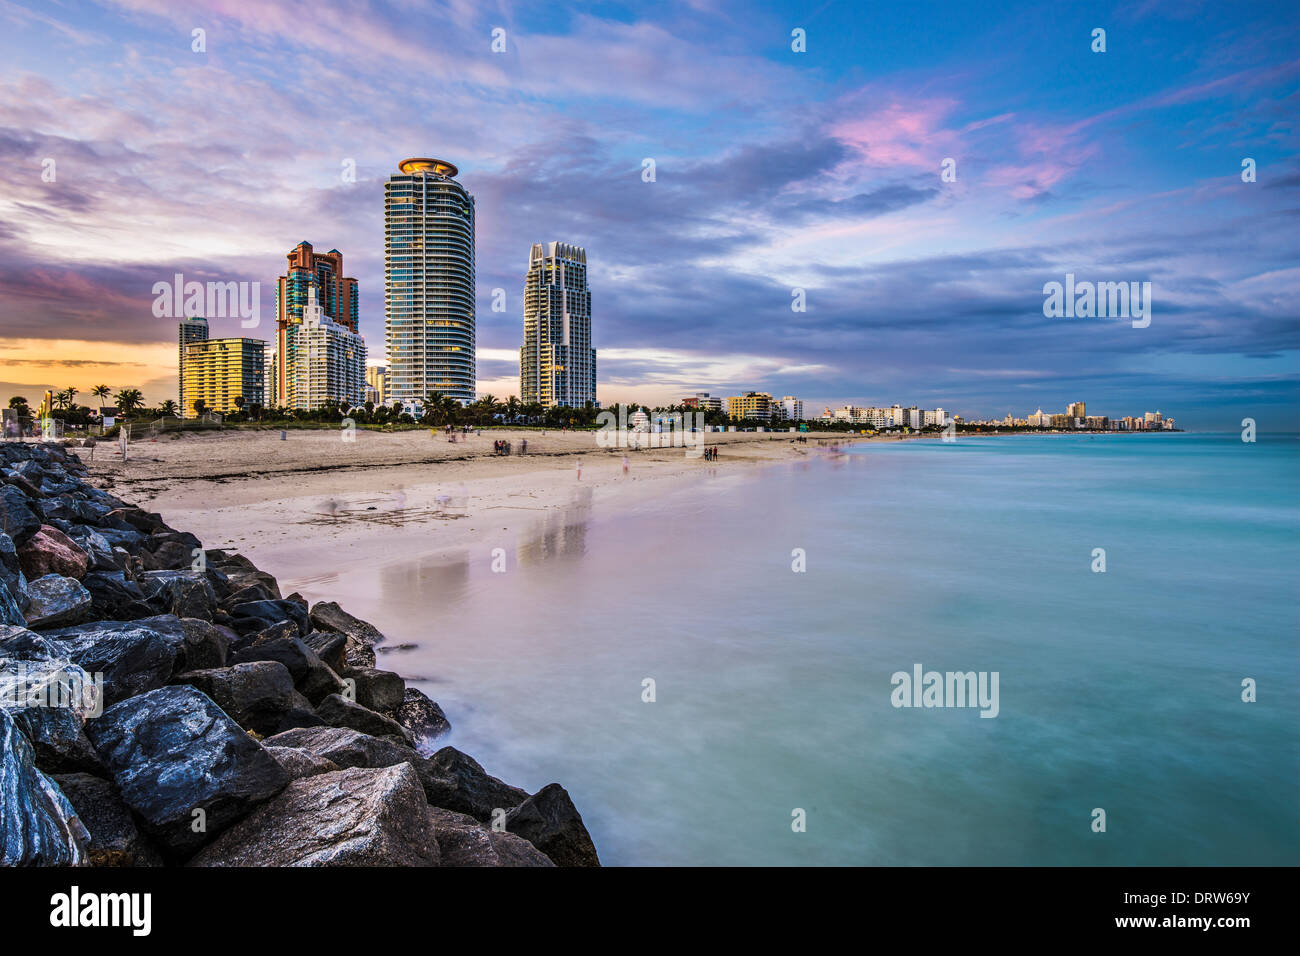 Miami, Floride, à South Beach. Photo Stock